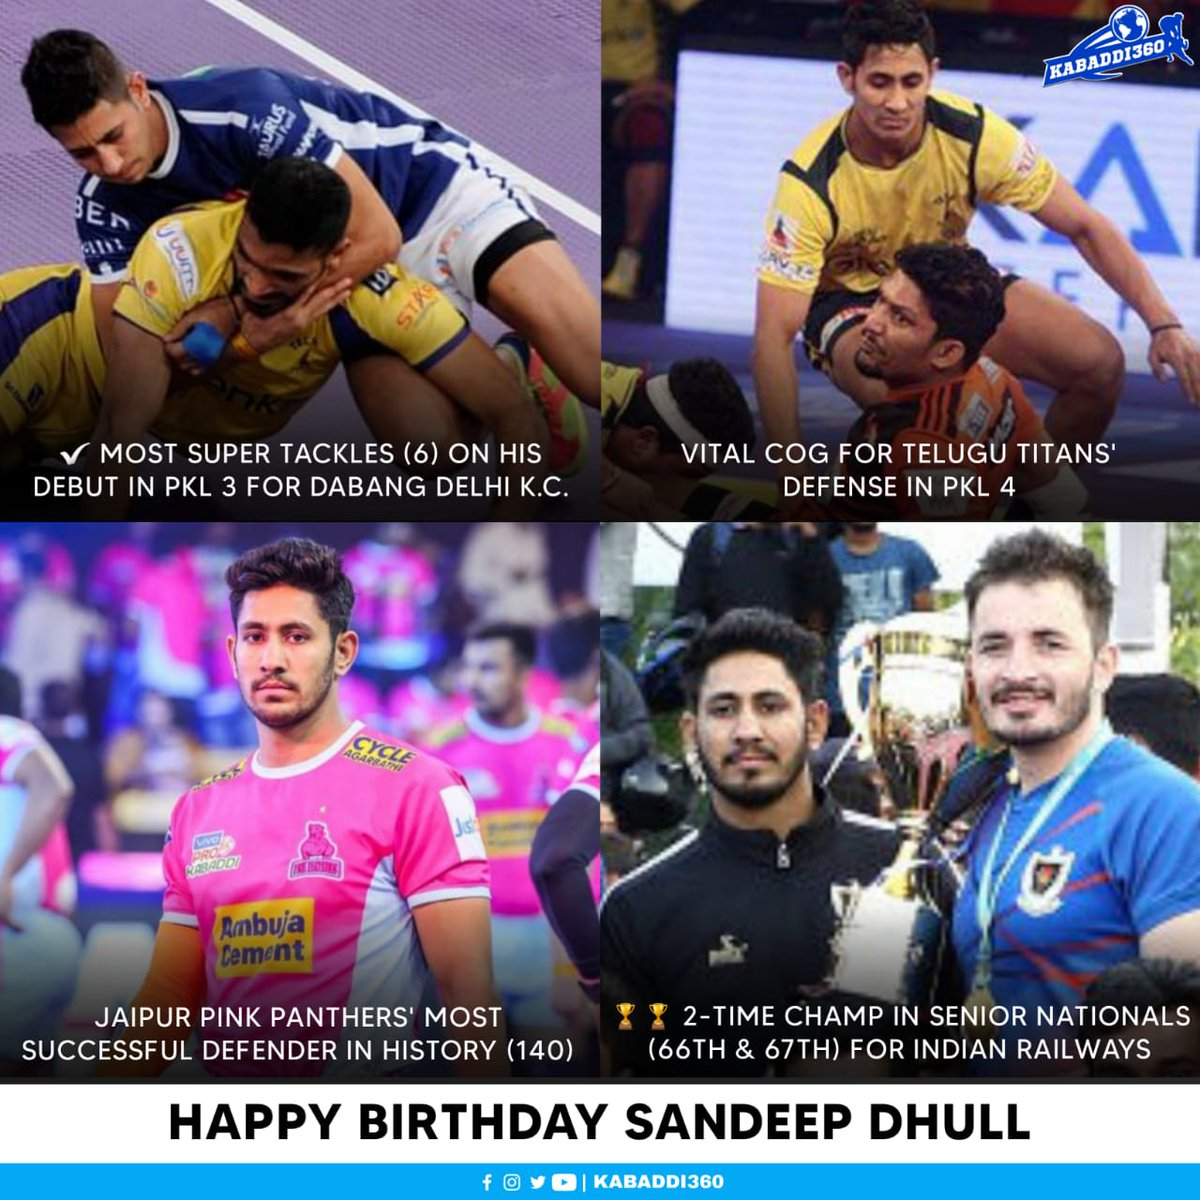 Wishing one of the thrilling left corner defenders in PKL today, happy birthday Sandeep Dhull 🎂  #SandeepDhull #HappyBirthday #Kabaddi360